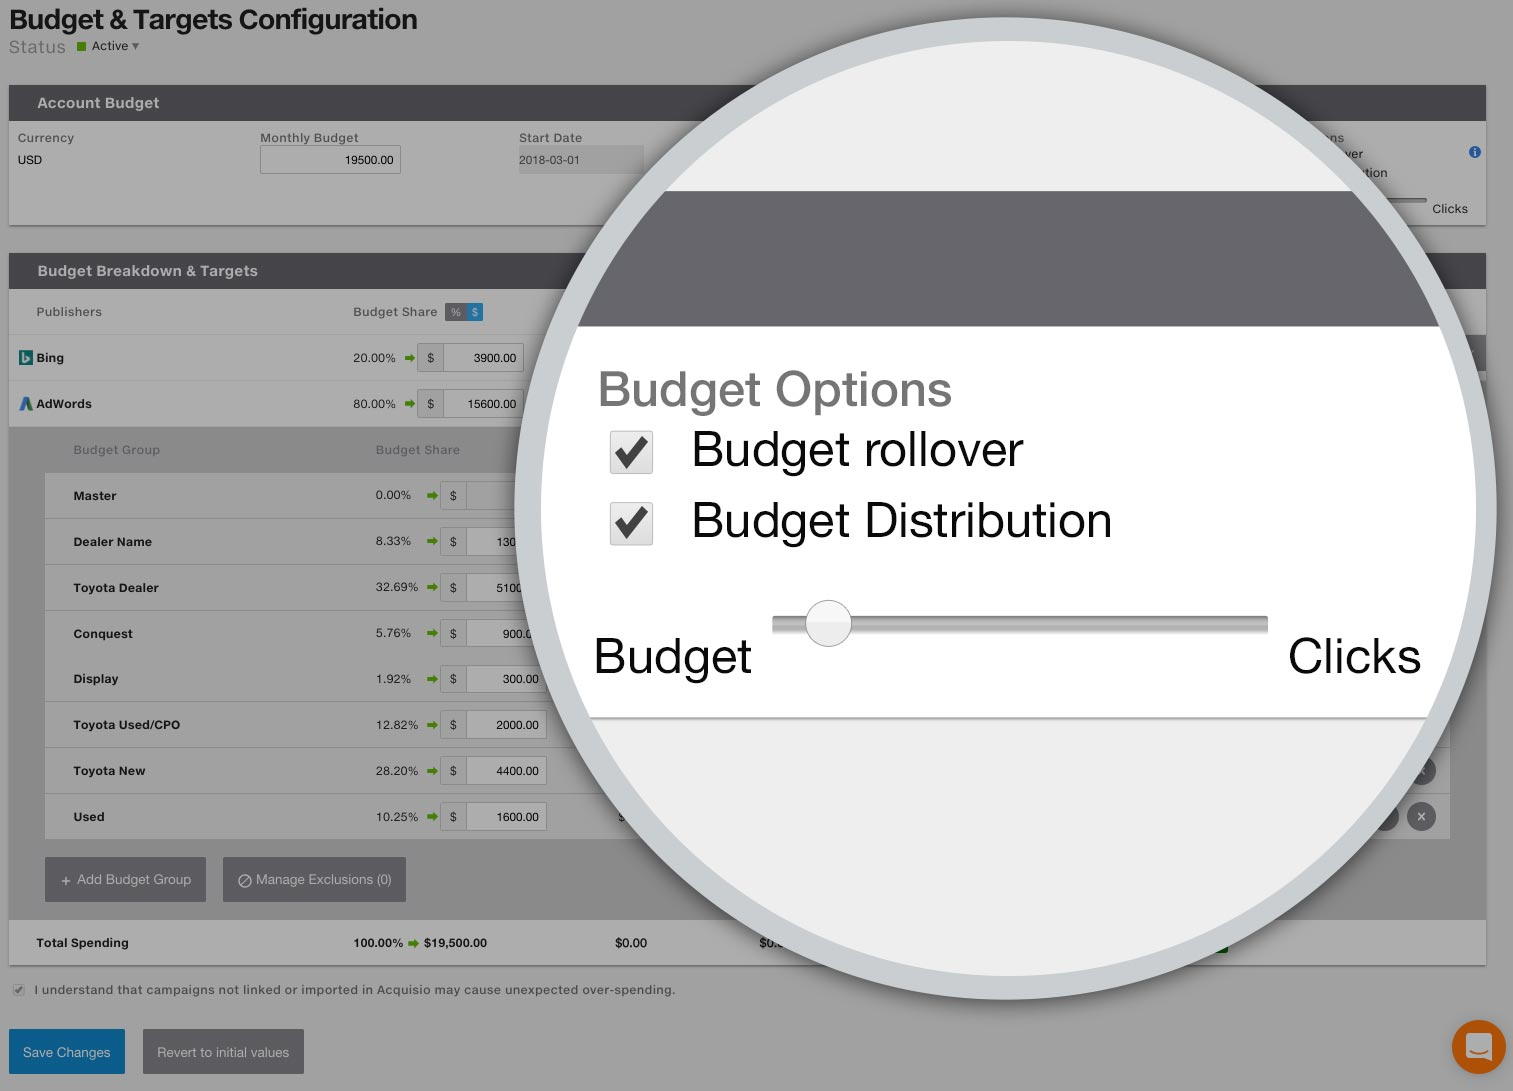 Budget Distribution slider towards budget